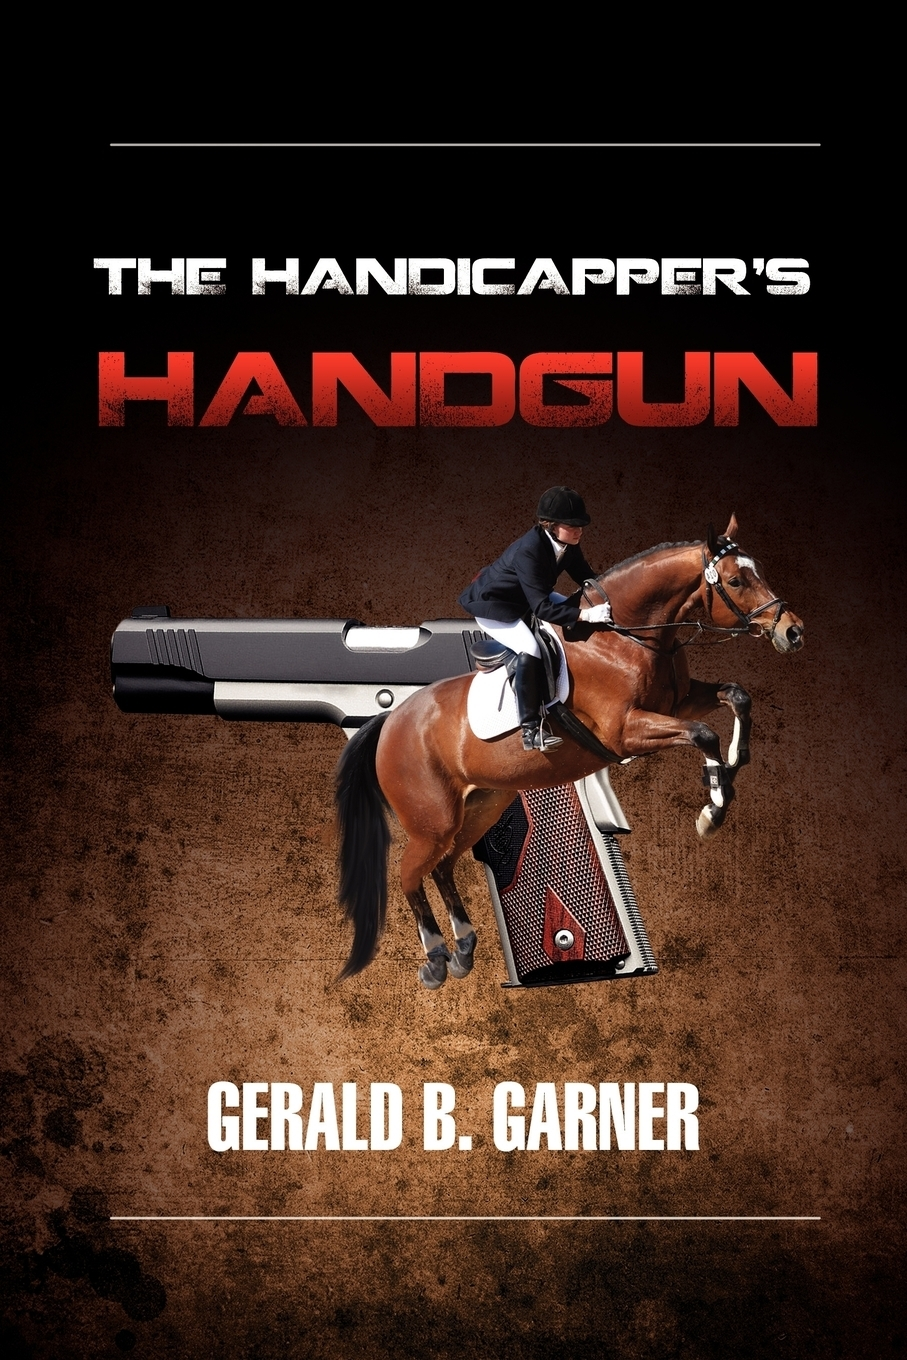 Gerald B. Garner. The Handicapper's Handgun